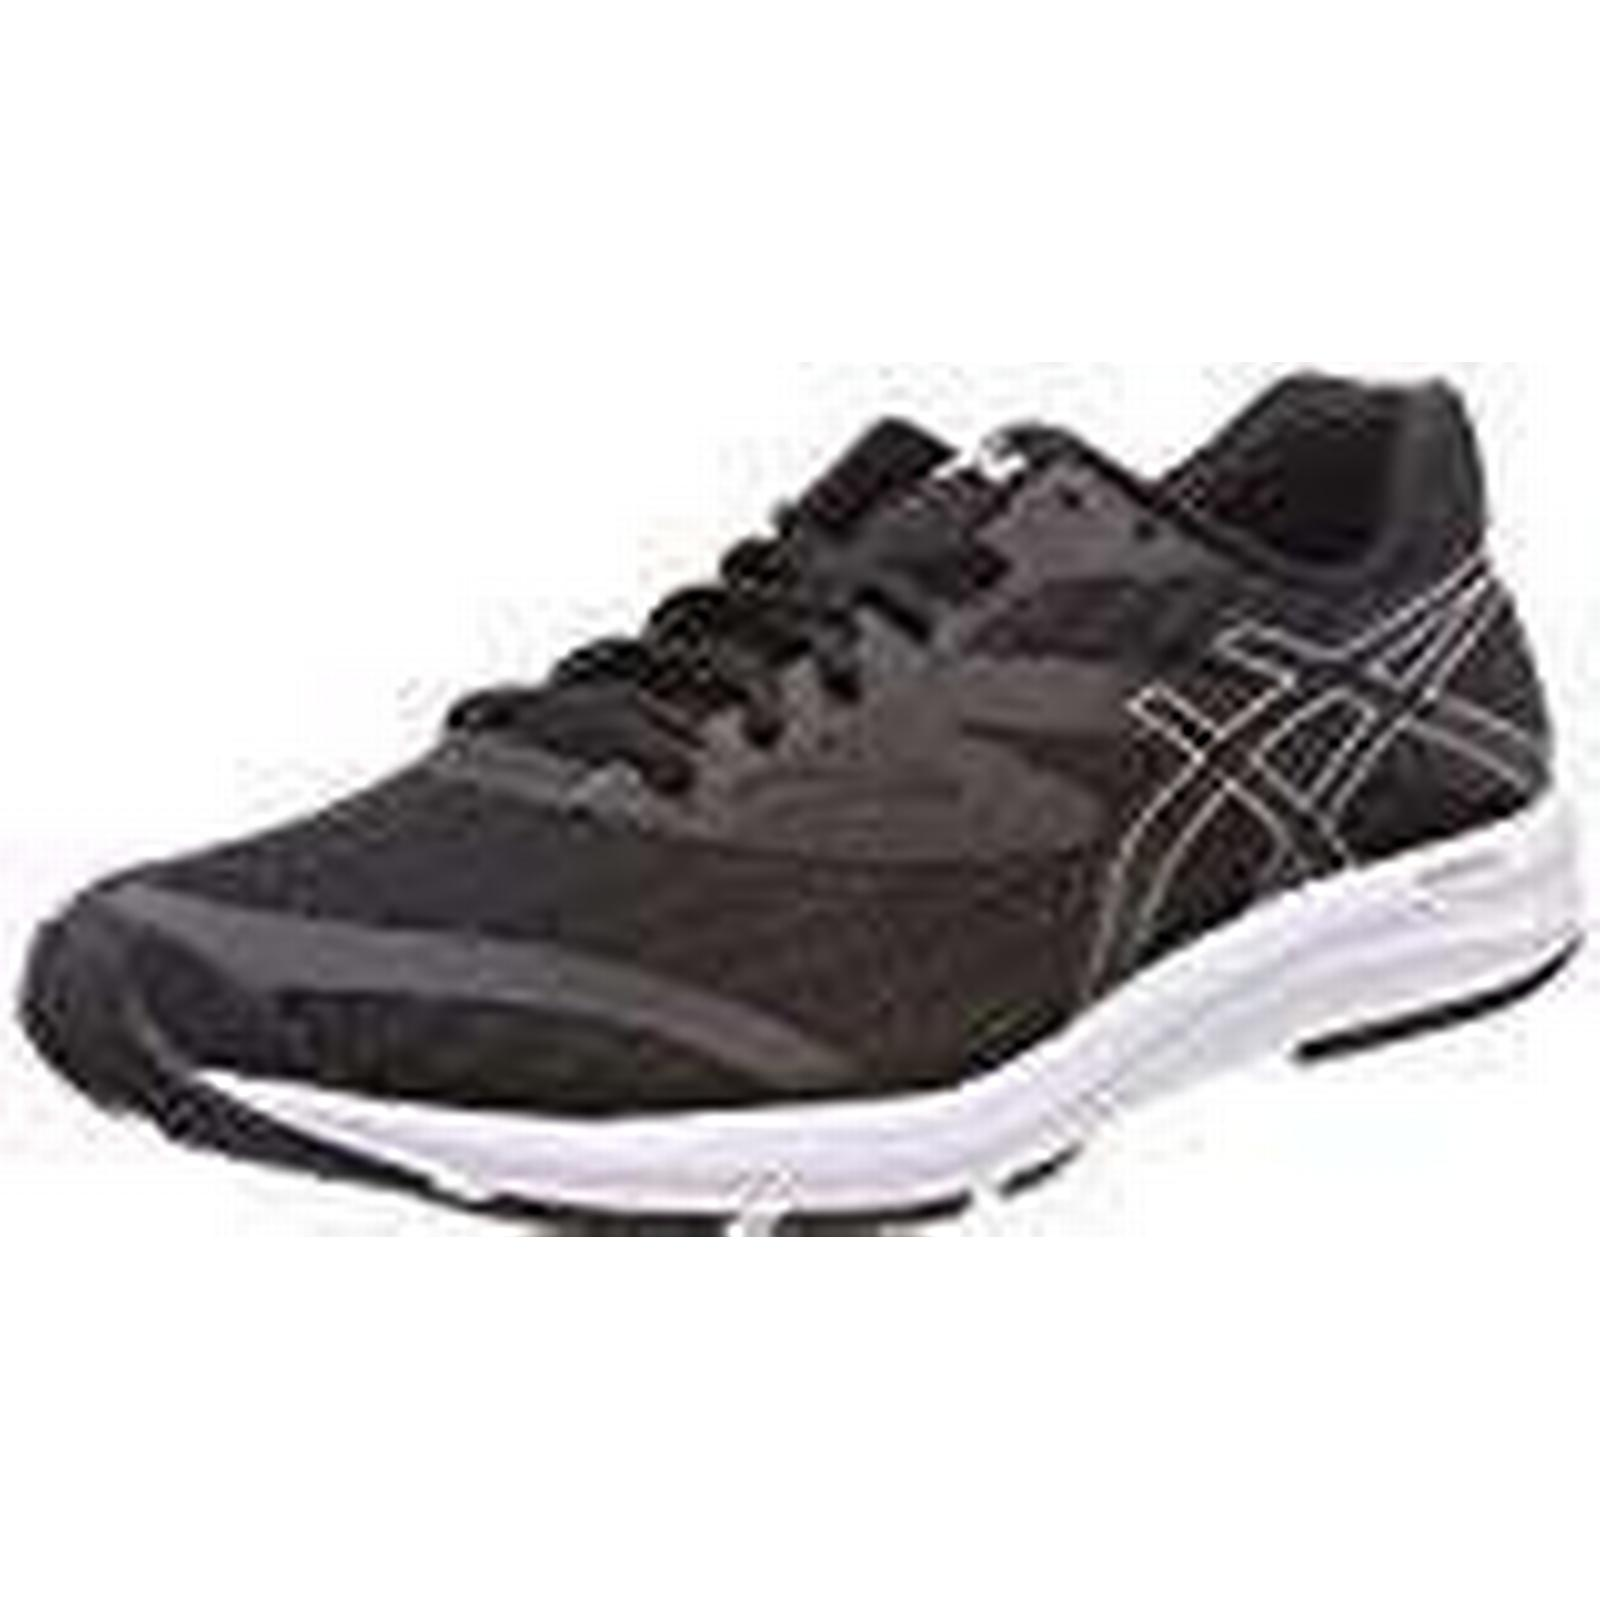 Asics Men's Amplica 9090, Competition Running Shoes, Black/White 9090, Amplica 10 UK c22cd8